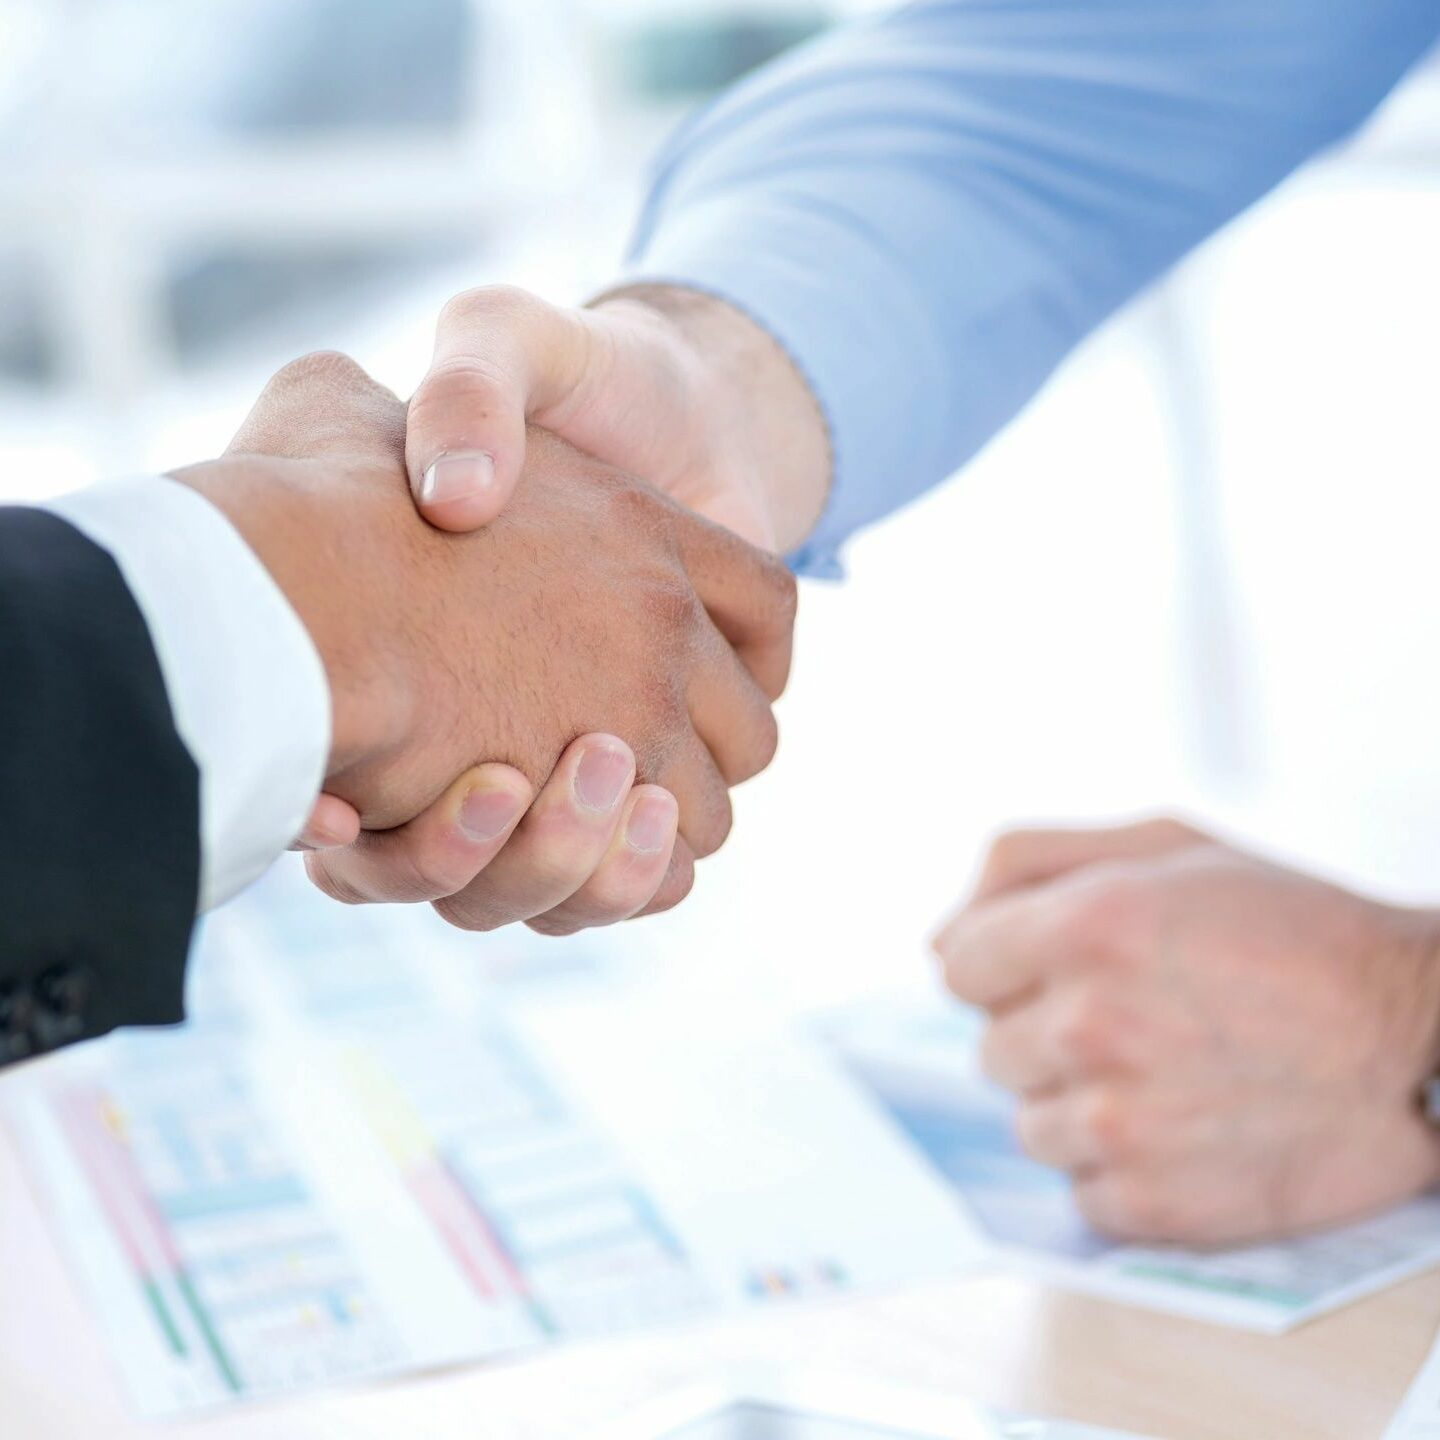 We partner with Realtors for a mutually beneficial business relationship